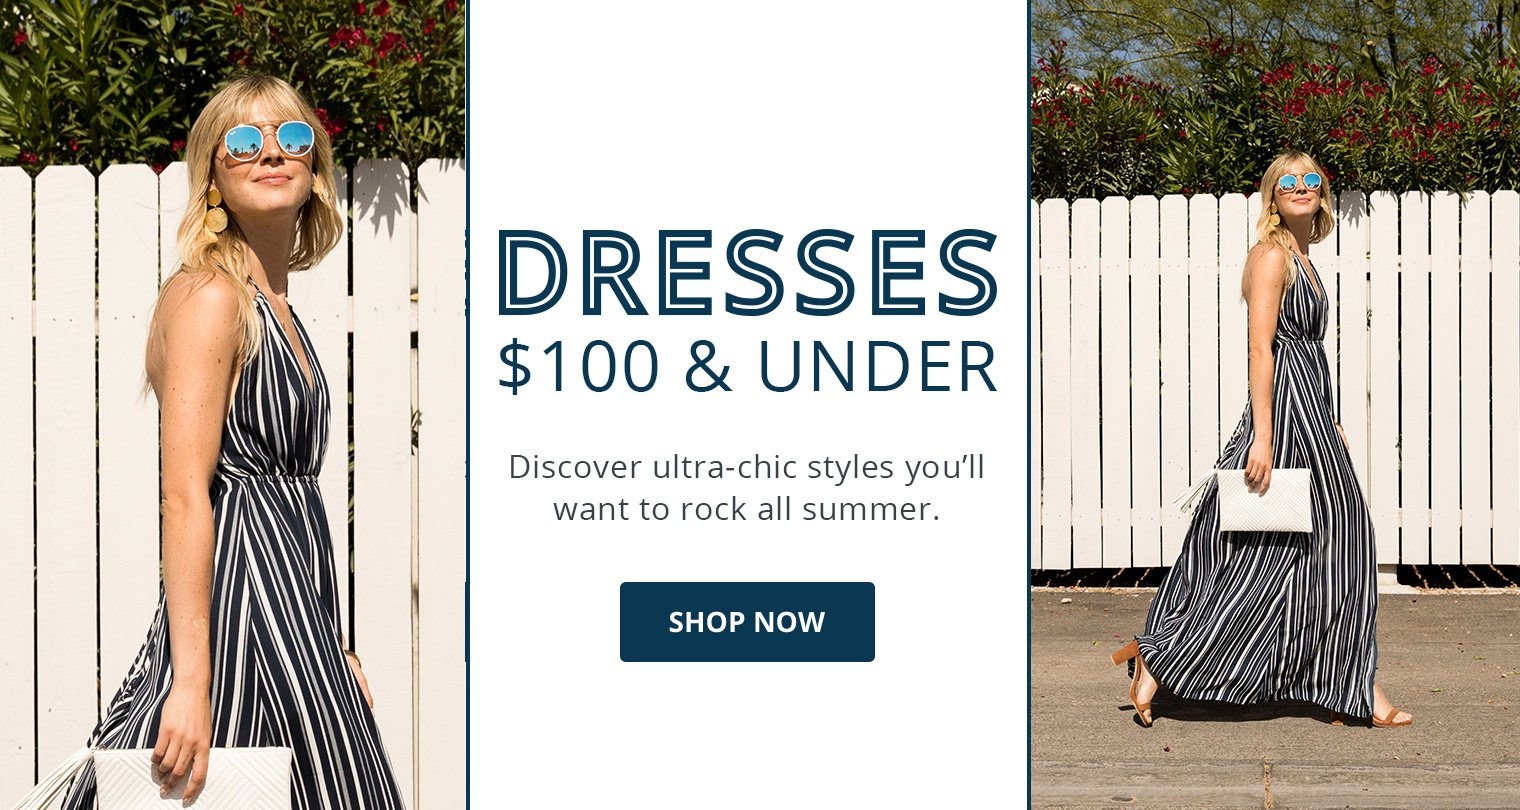 Dresses $100 and Under. Discover ultra-chic styles you'll want to rock all summer. Shop Now.